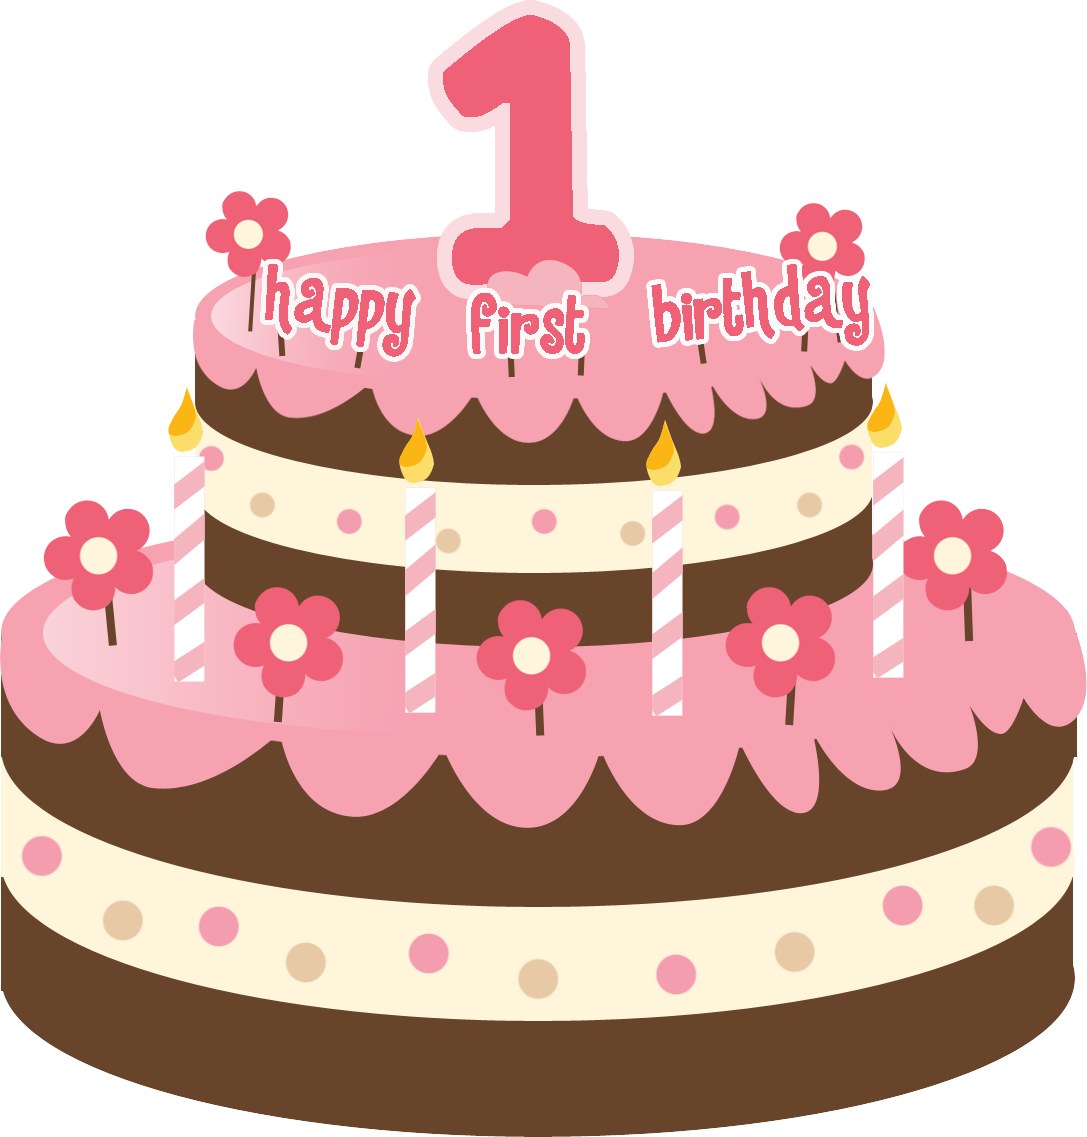 Cake one year clipartfest. 1st birthday clipart boy